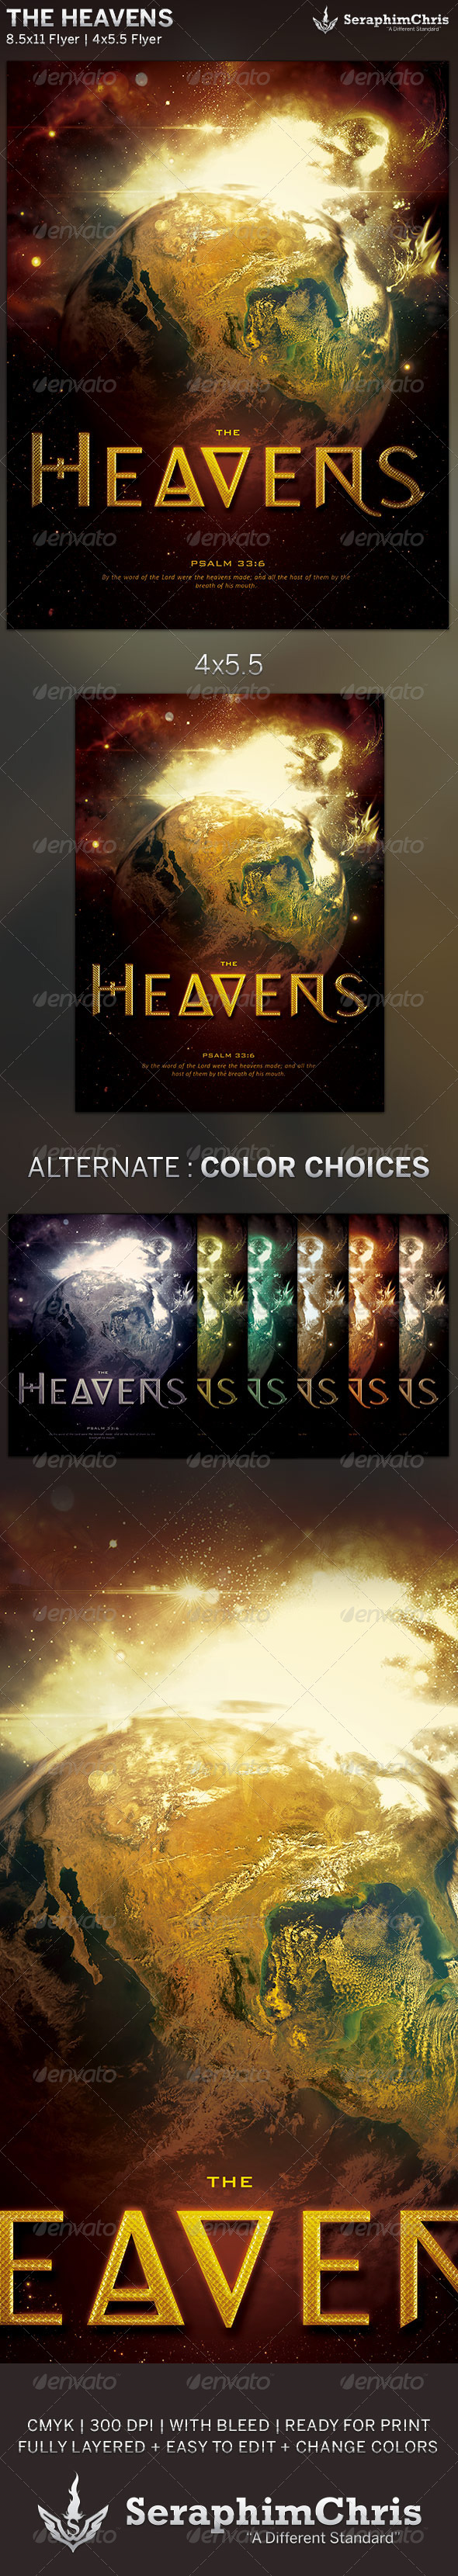 The Heavens: Church Flyer Template - Church Flyers